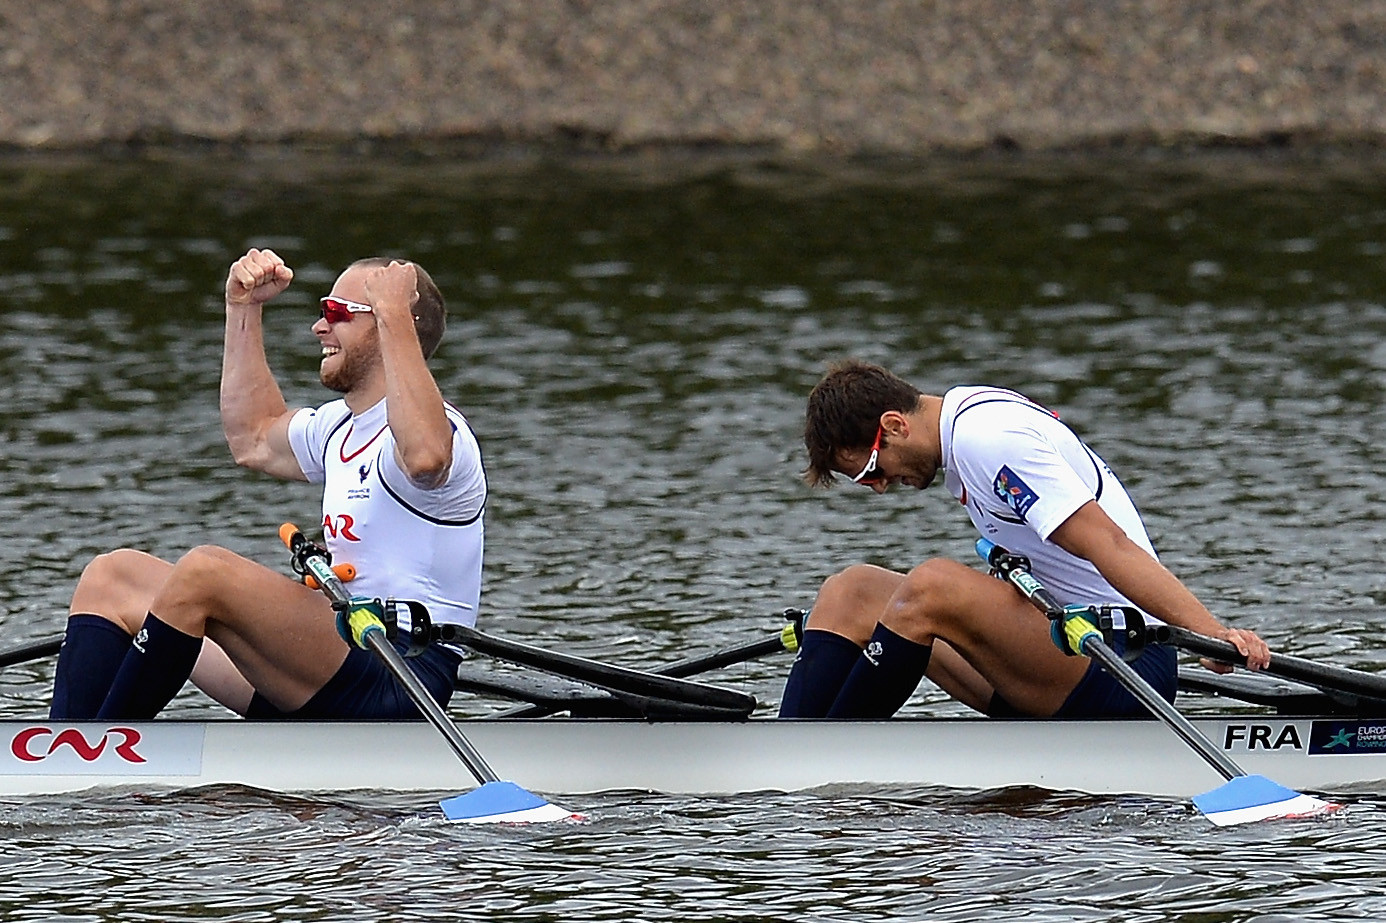 Hugo Boucheron and Matthieu Androdias won a closely fought men's double sculls final ©Getty Images